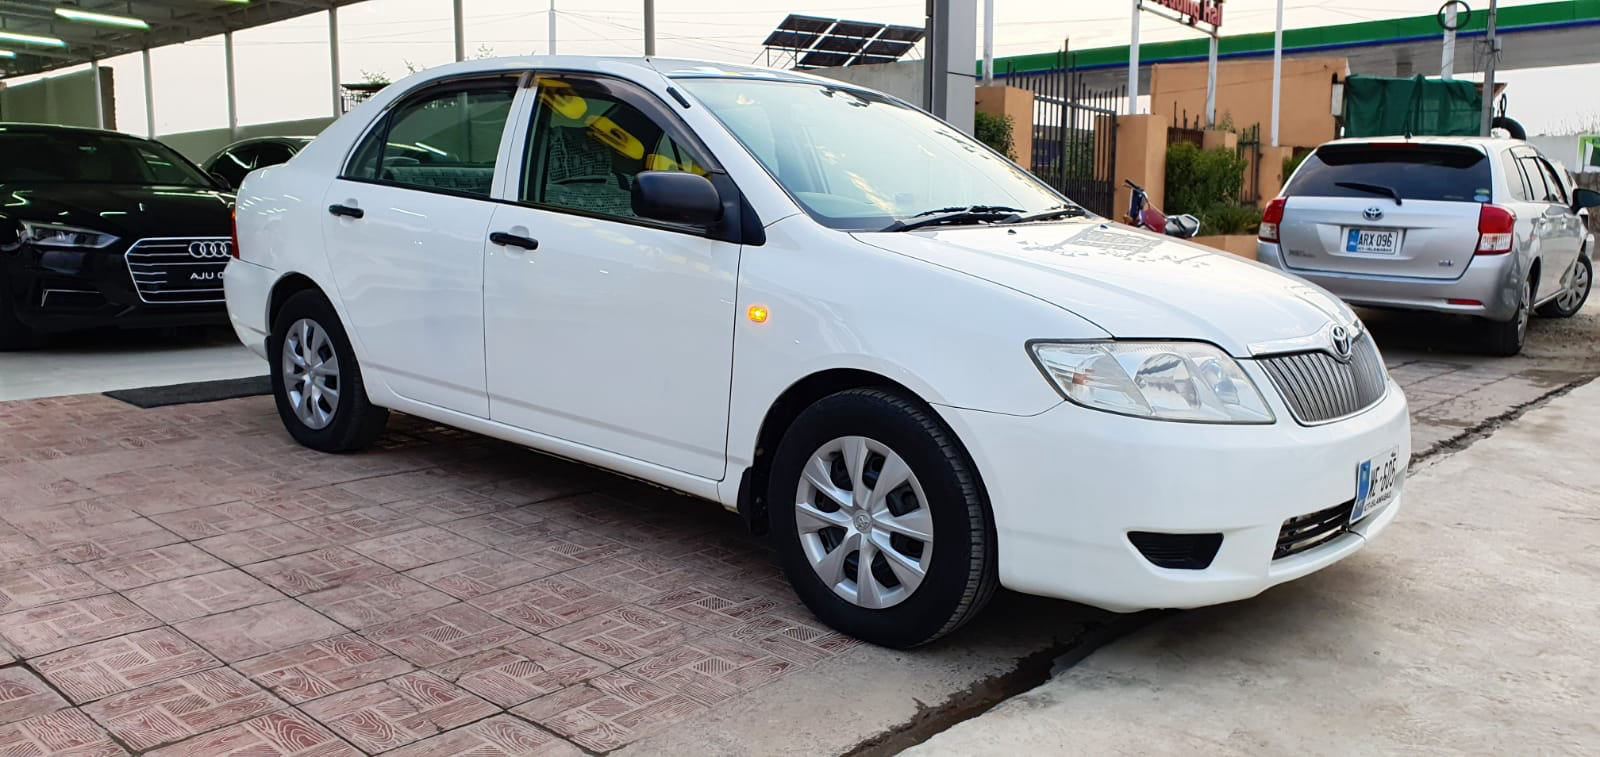 Toyota Corolla X Assista Package 2012